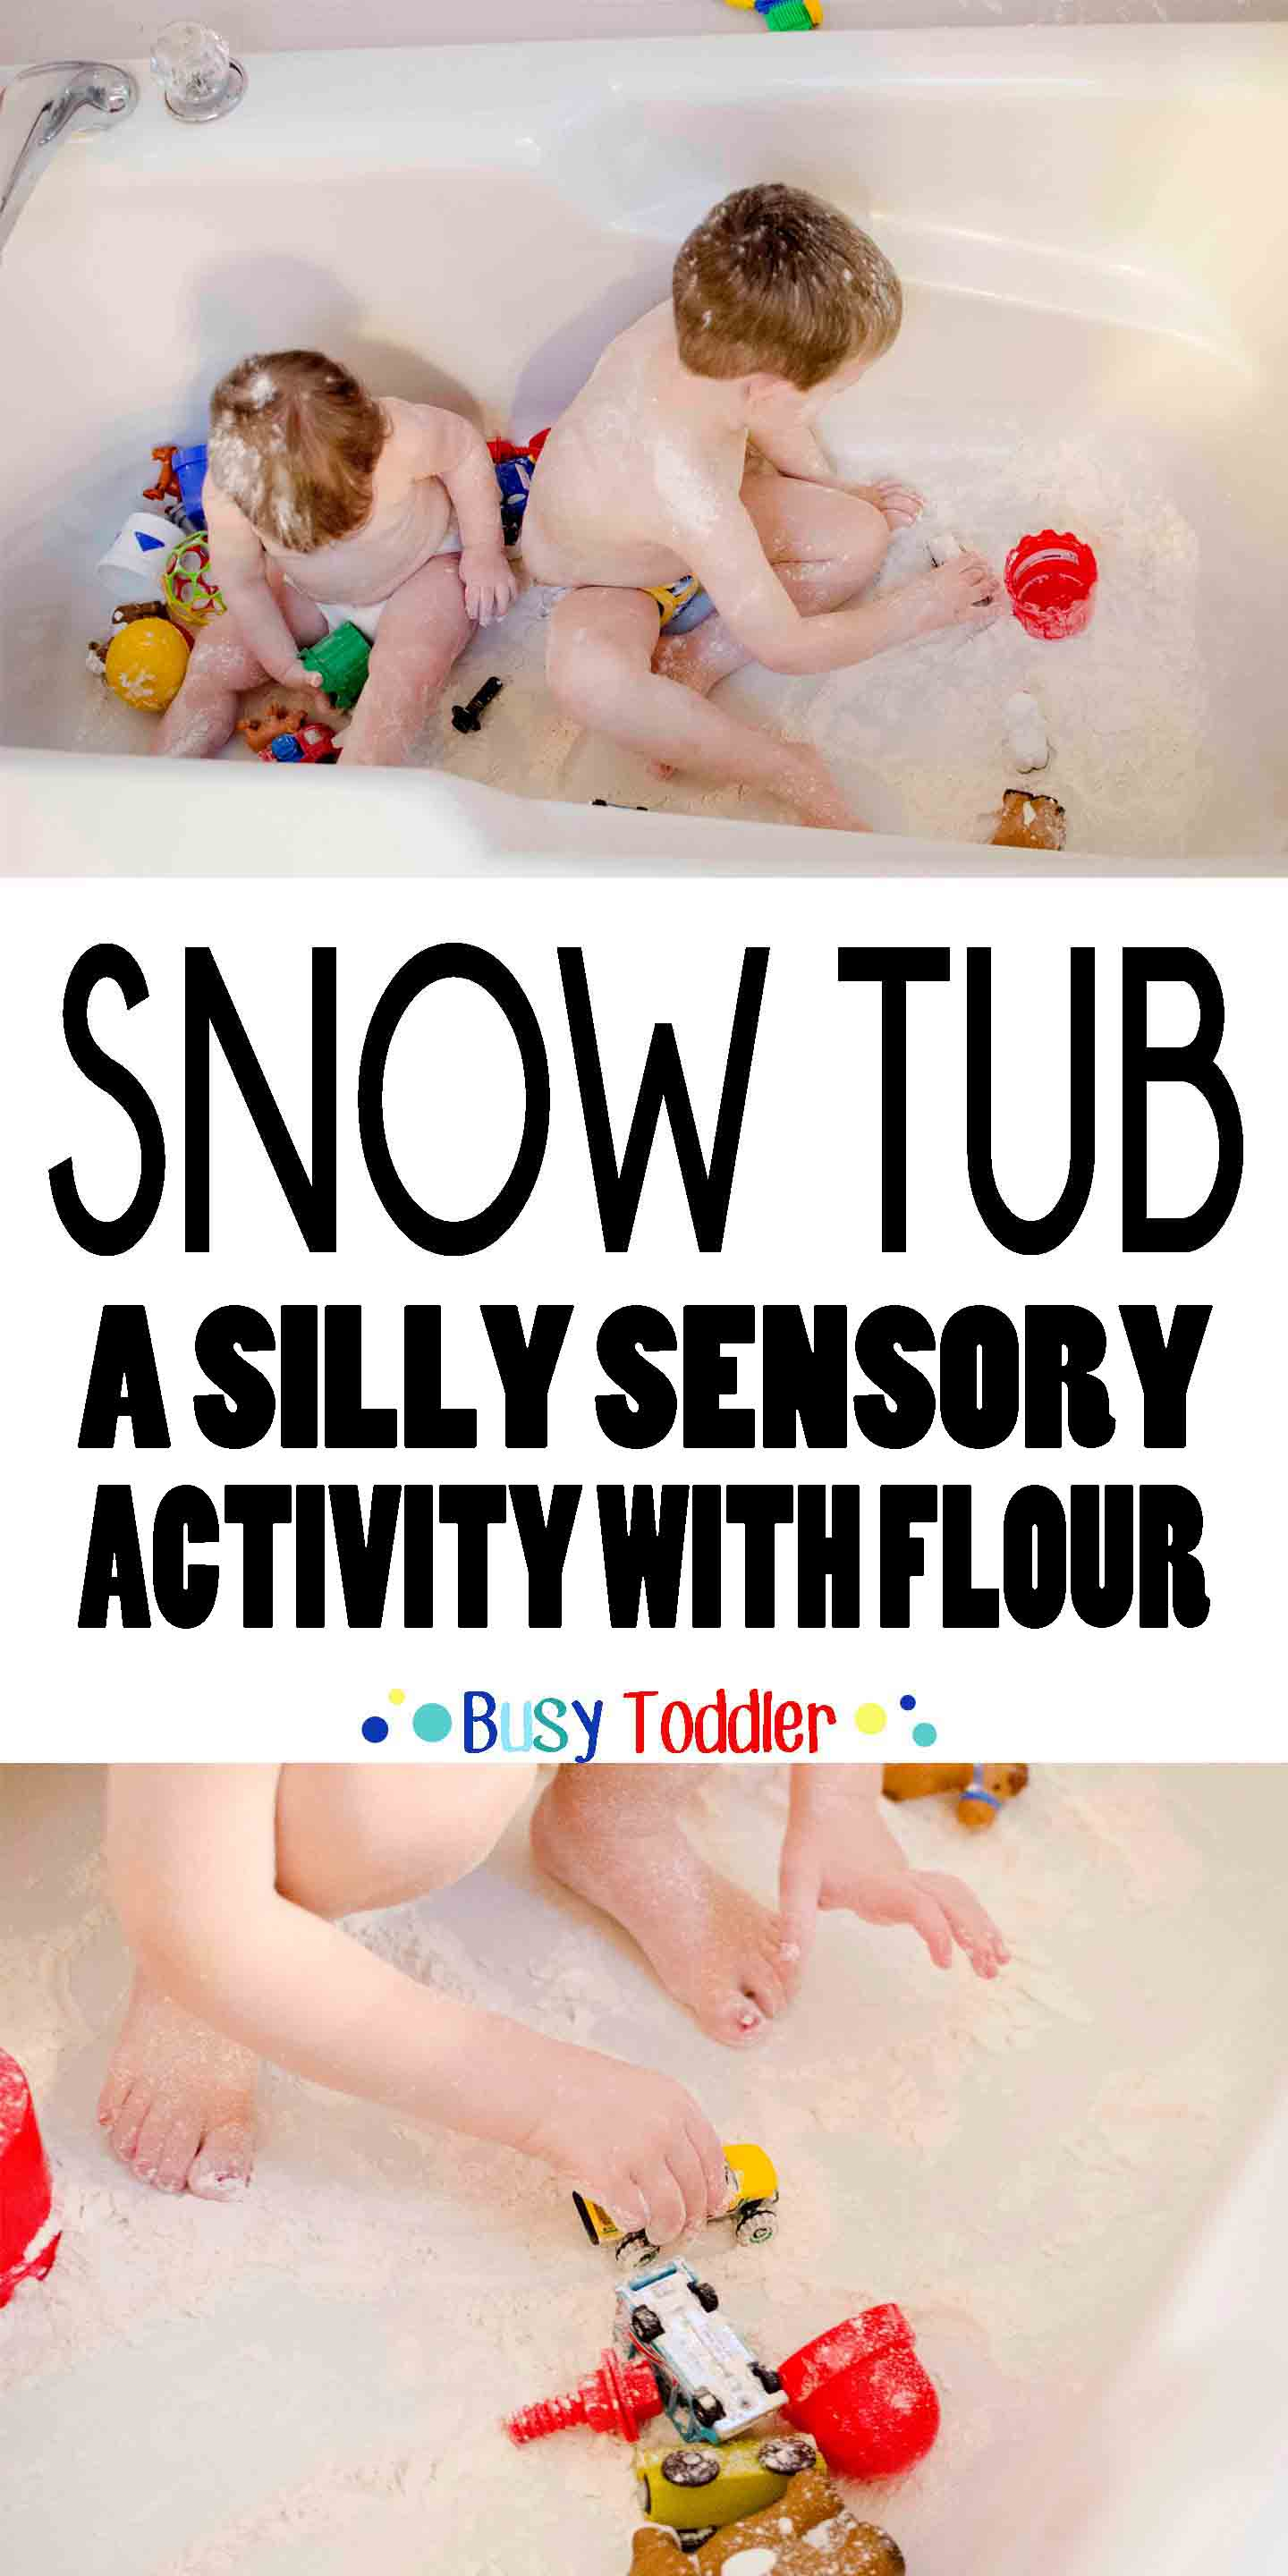 SNOW TUB: A silly toddler activity with flour